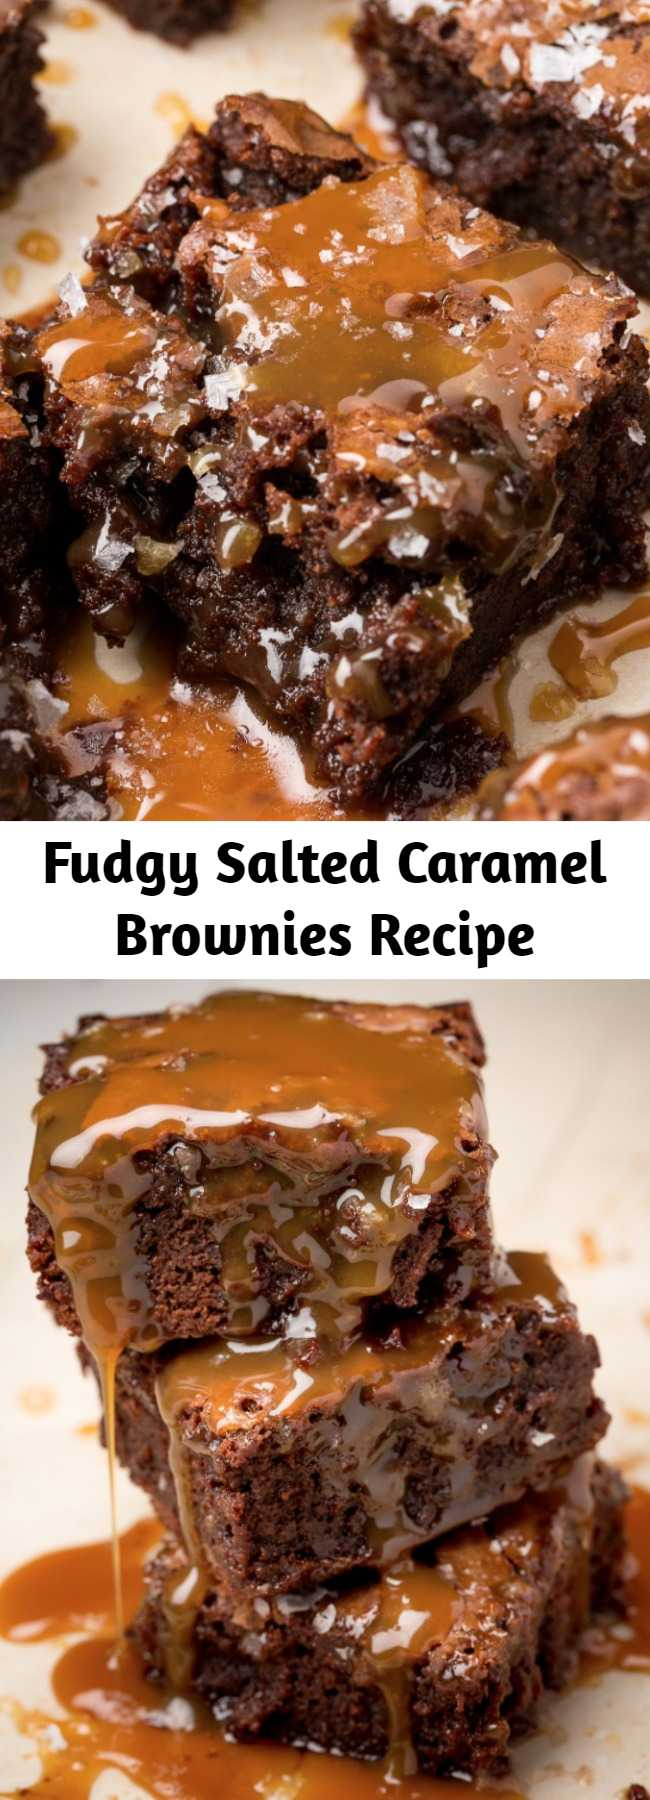 Fudgy Salted Caramel Brownies Recipe - These salted Caramel Brownies are the most beautiful mess you'll ever eat.